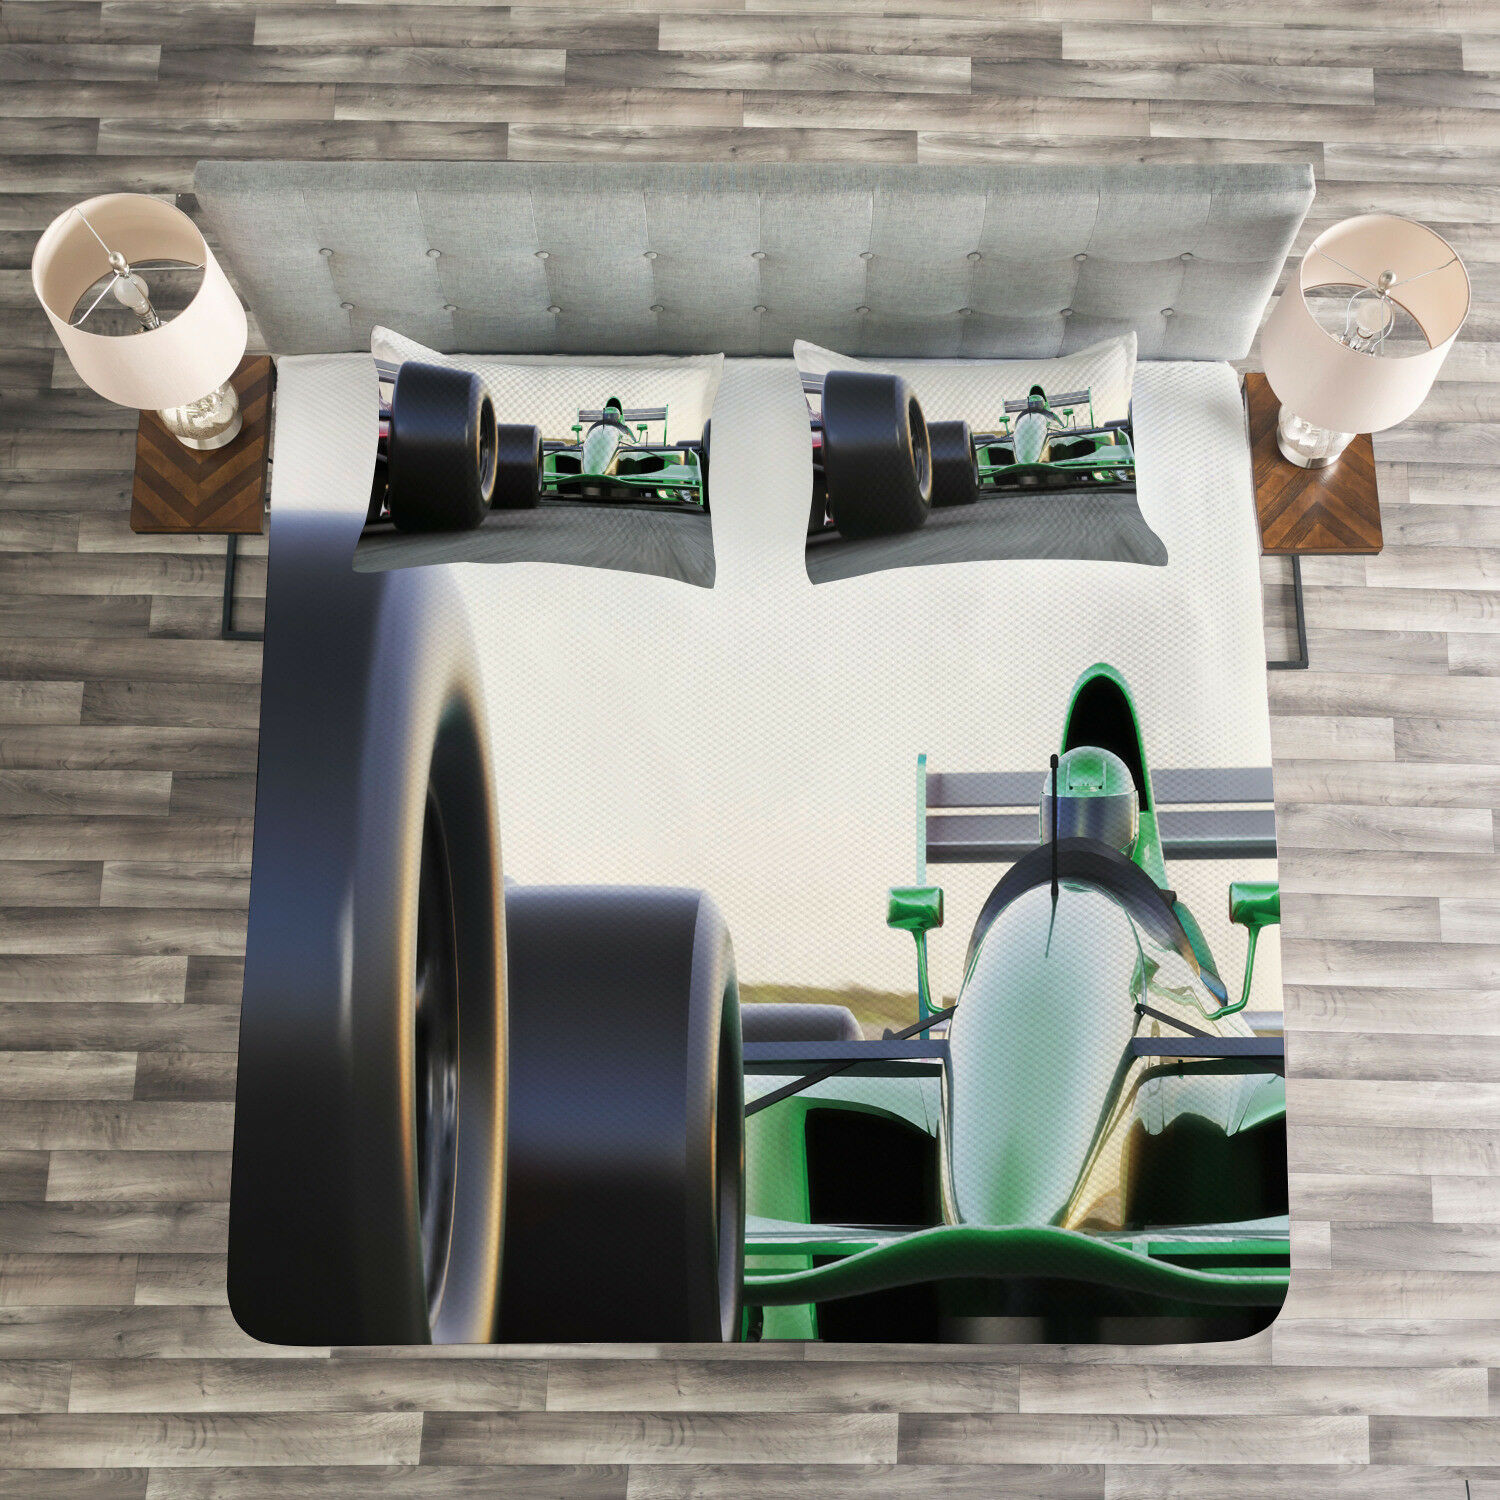 Cars Quilted Bedspread & Pillow Shams Set, Indy Cars on Asphalt Road Print